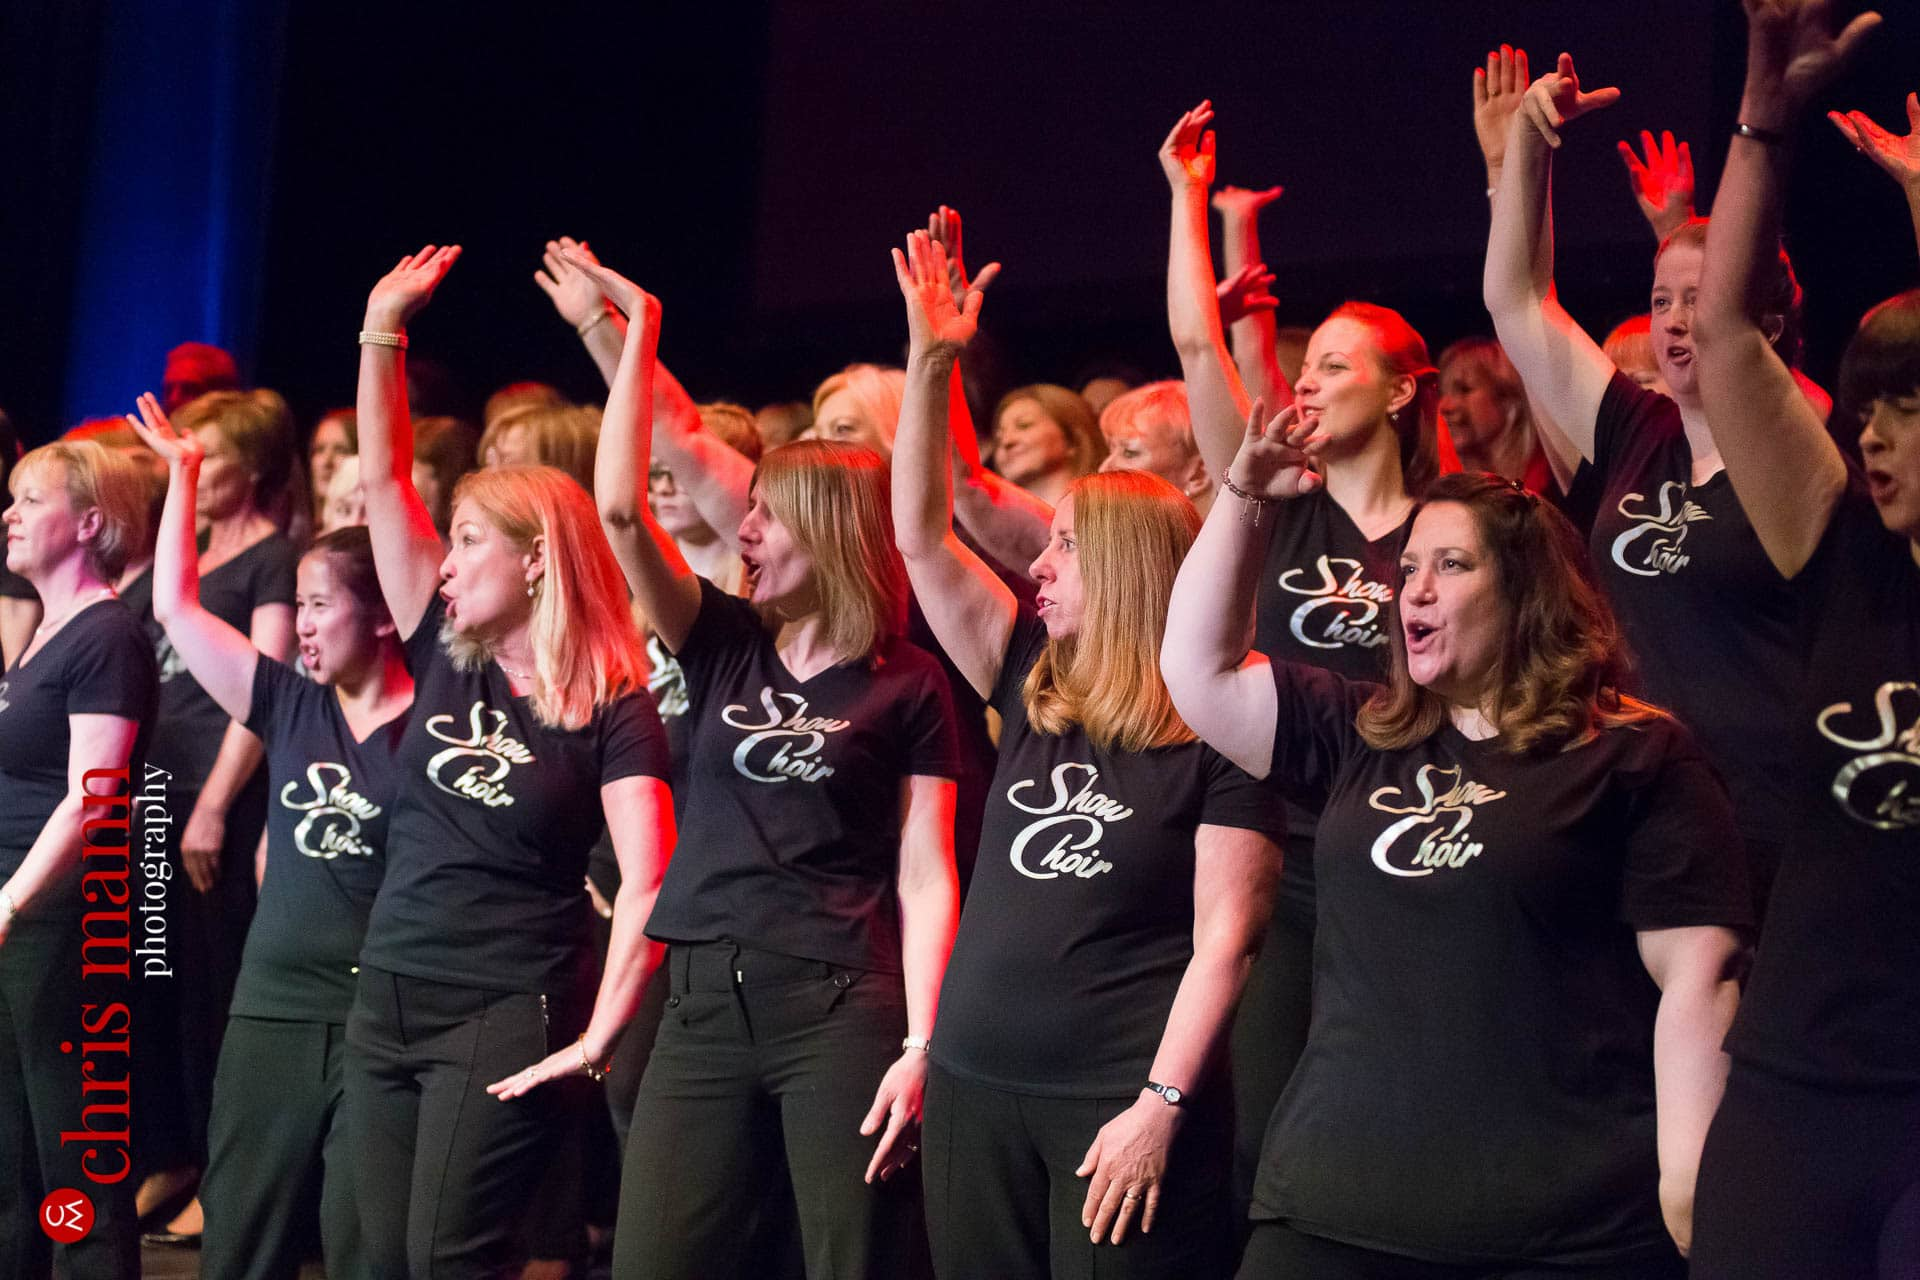 Cobham and Woking Show Choirs perform at Choiroke 2016 concert Dorking Halls